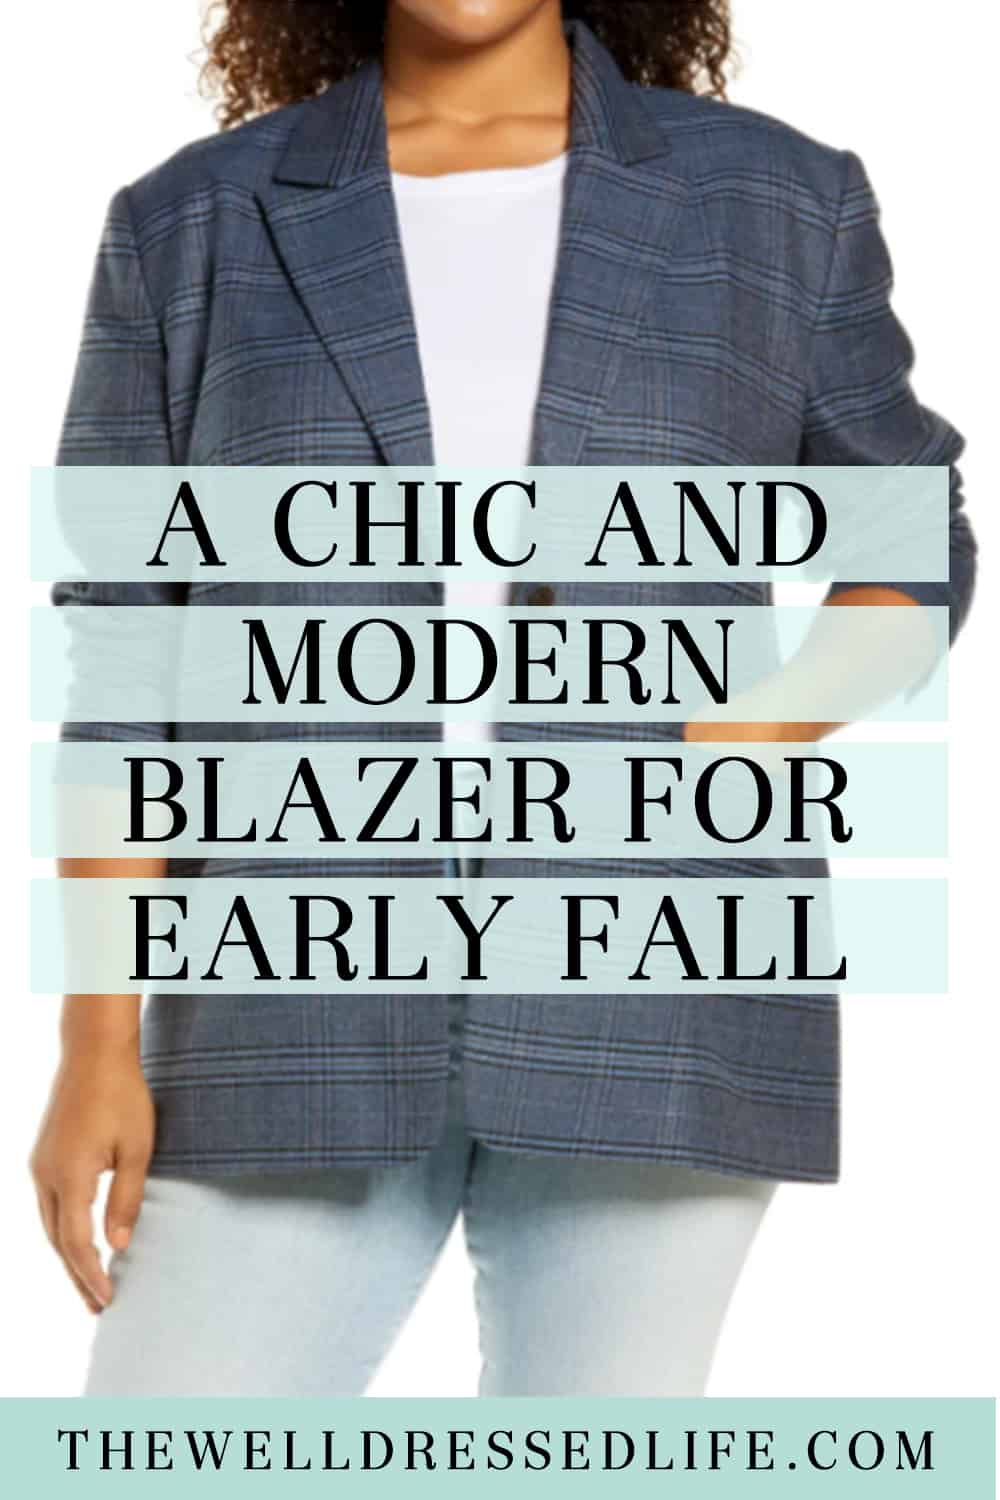 A Chic and Modern Blazer for Early Fall